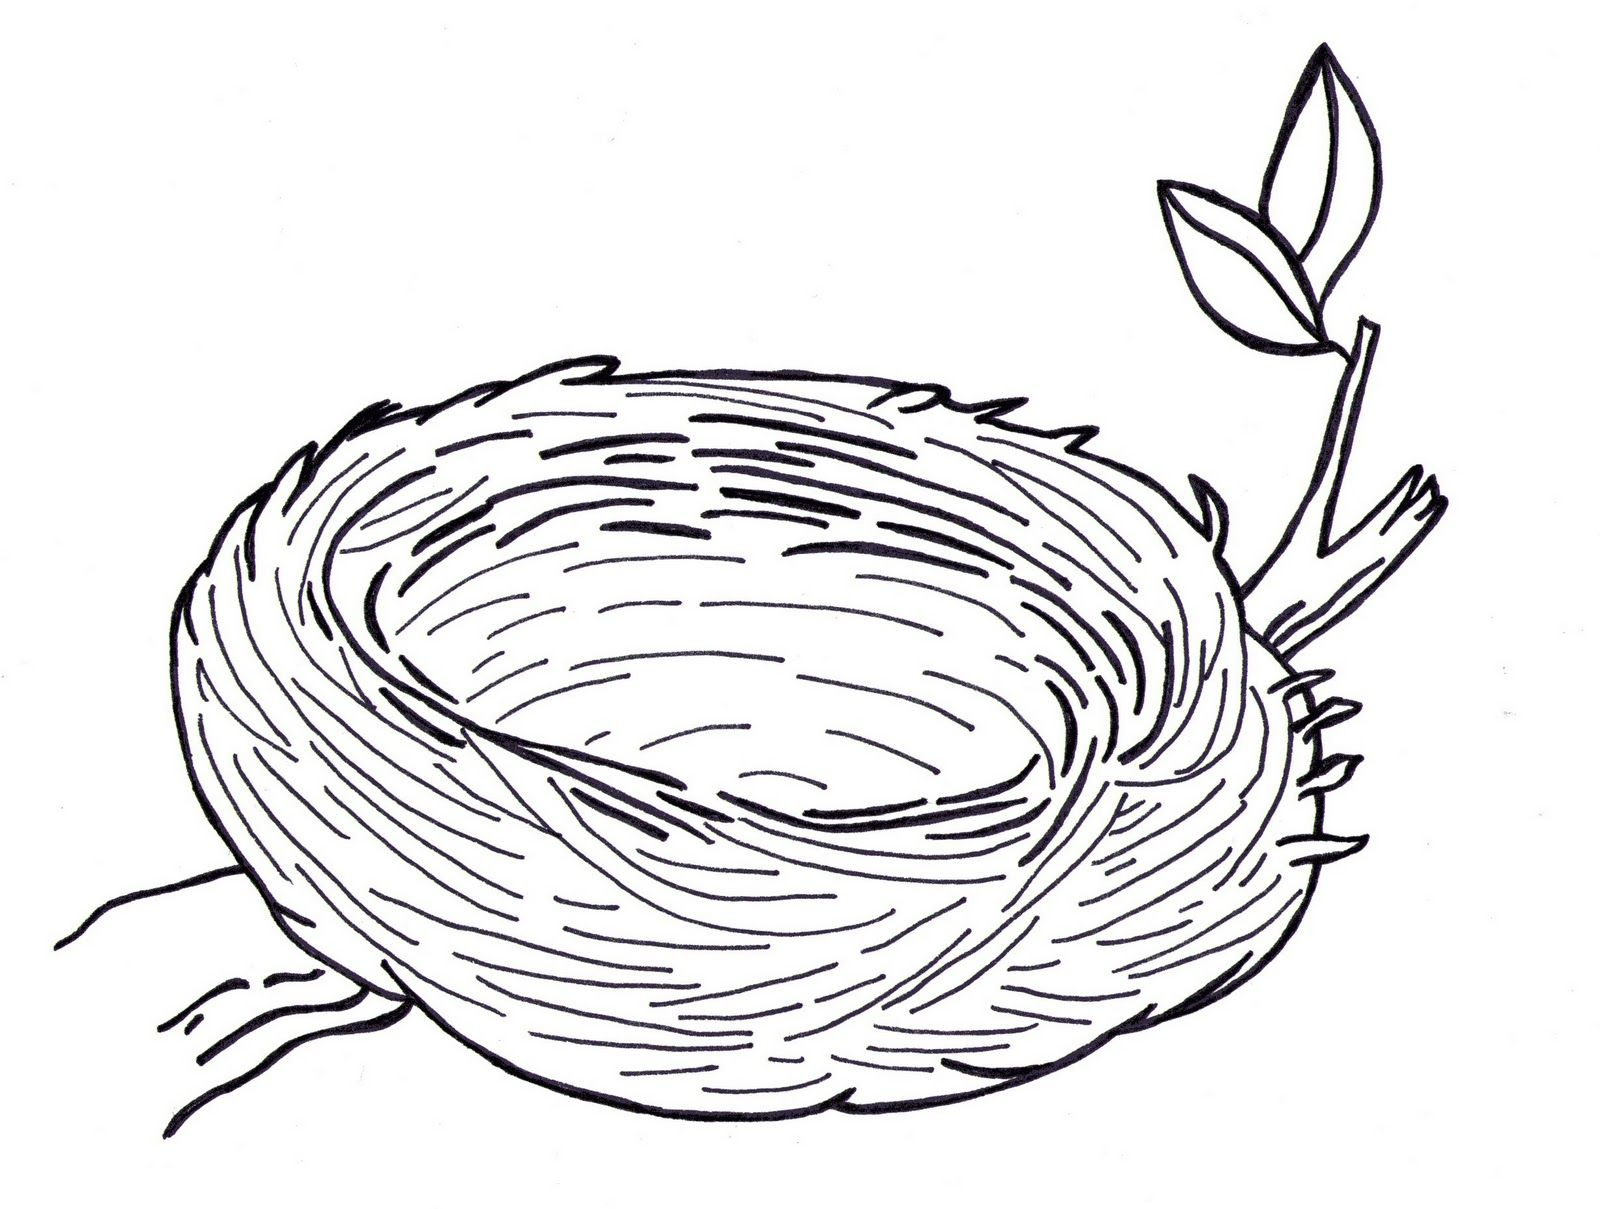 Line Drawing Nest : Line art drawings of trees posted by sarah bell smith at